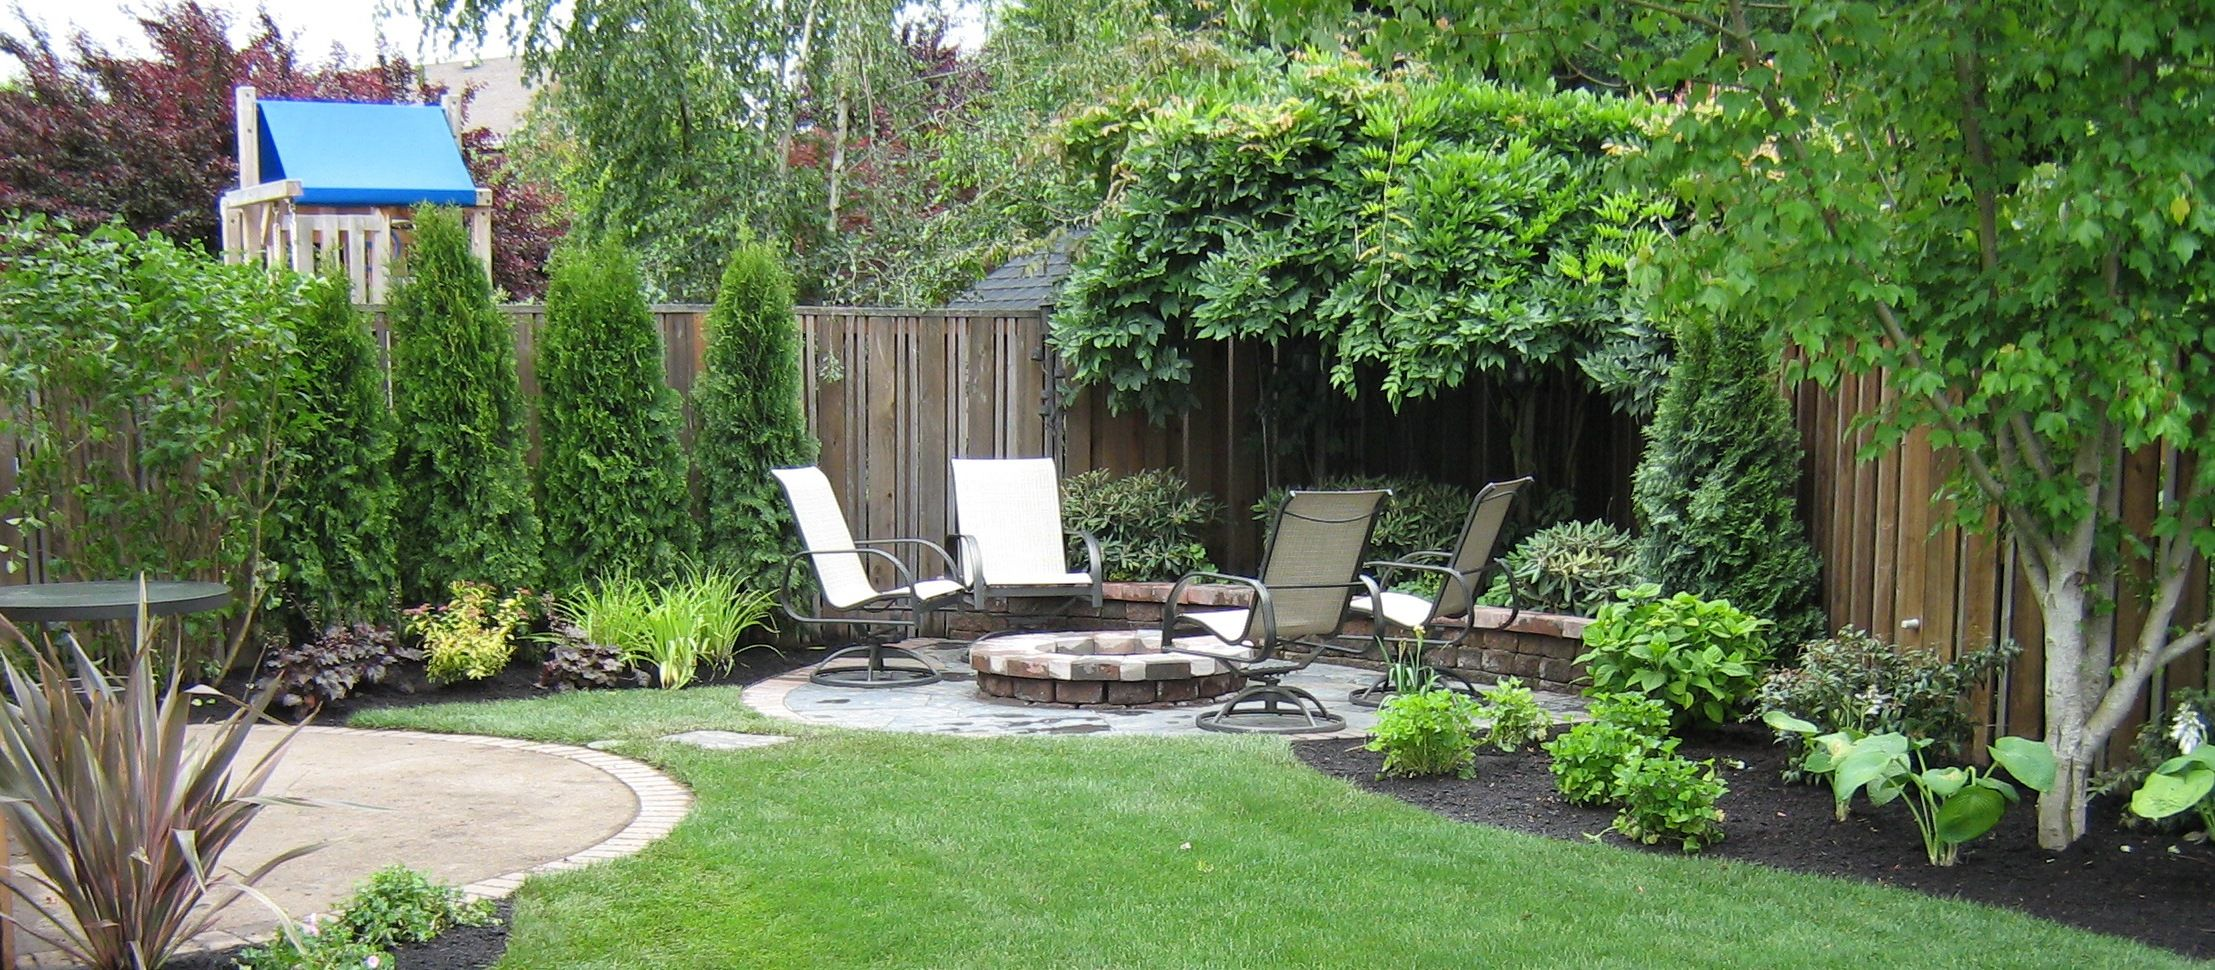 Small backyard landscaping ideas photos garden design for Garden design fees